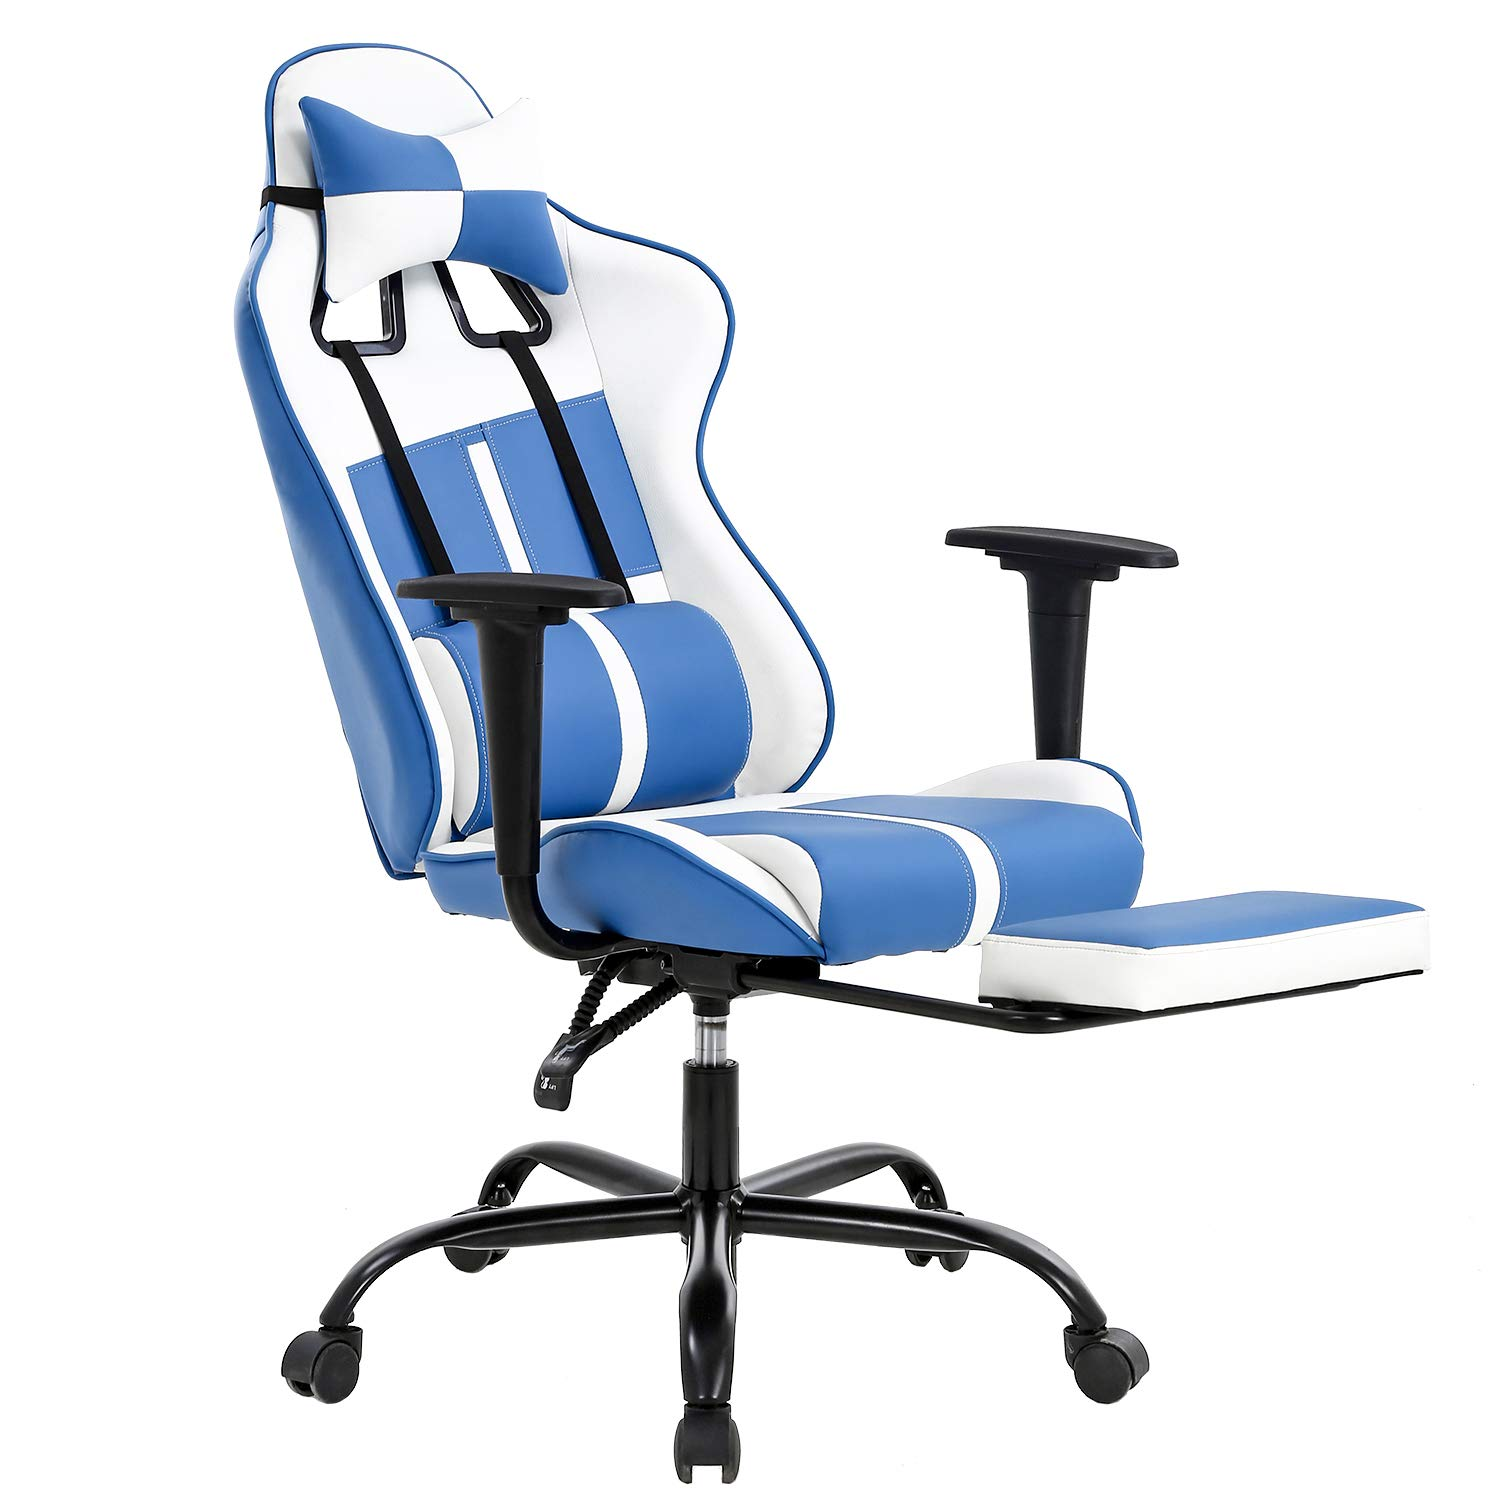 High-Back Office Chair PC Gaming Chair Ergonomic